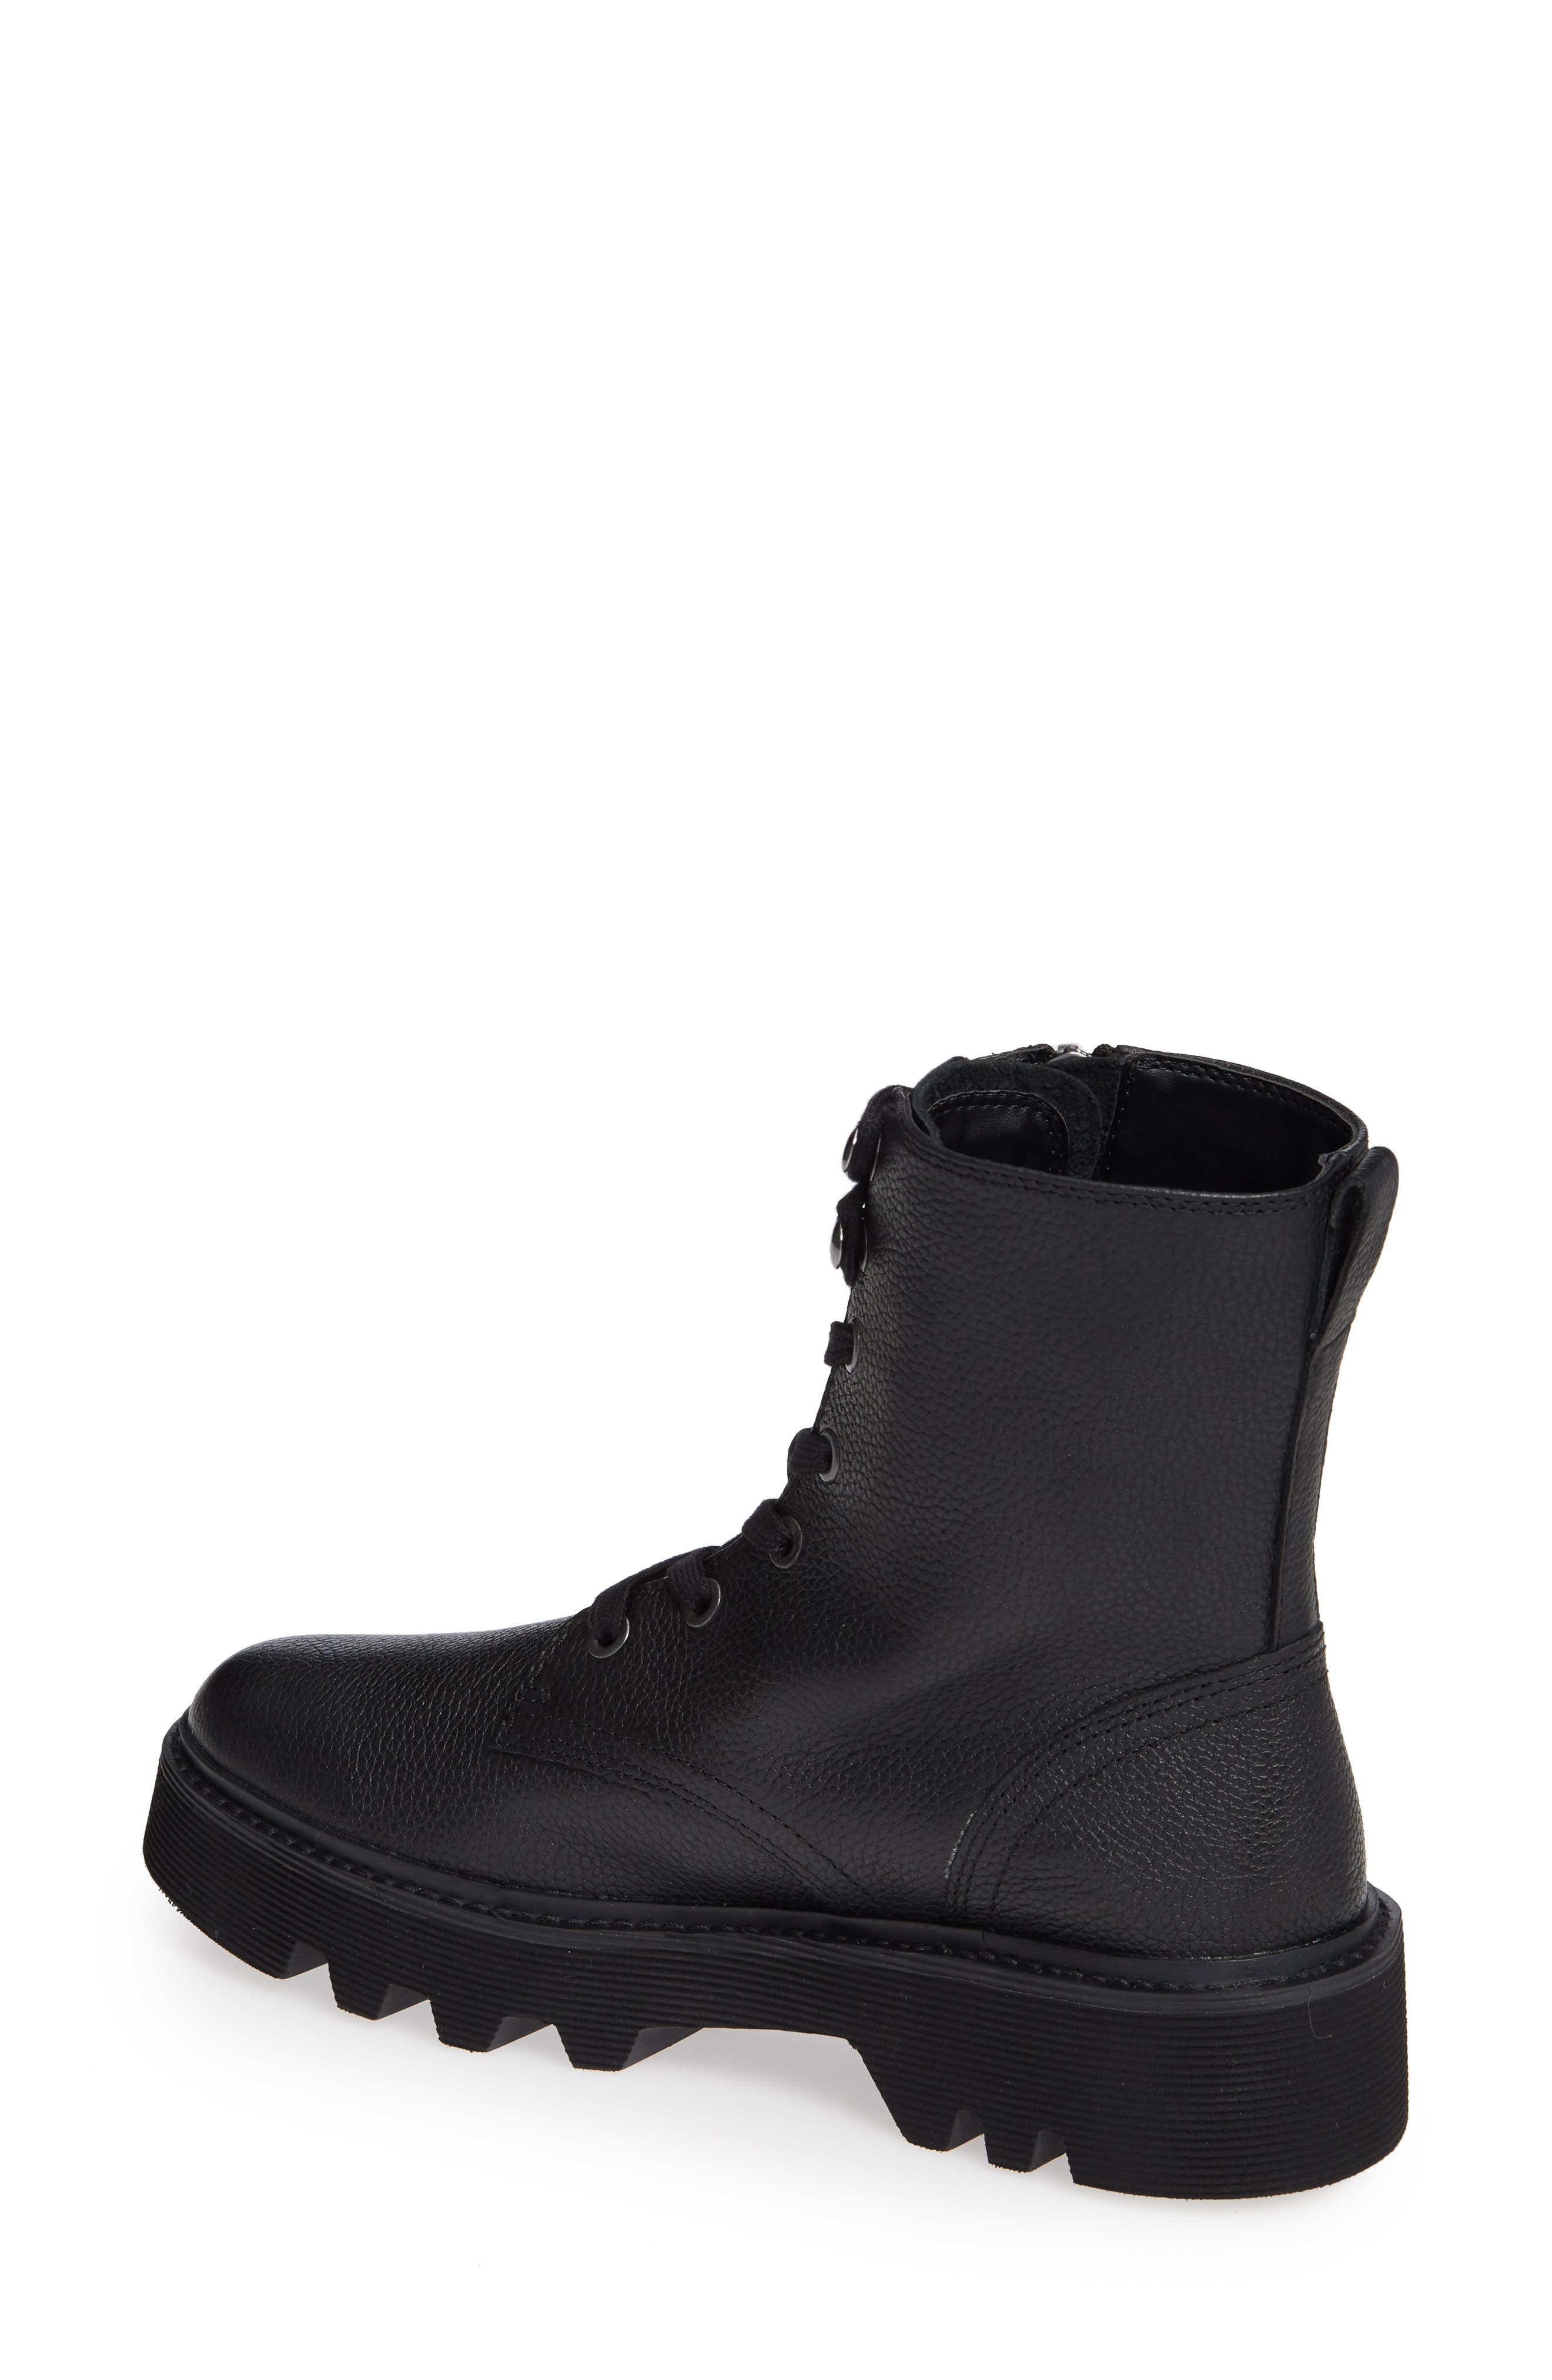 Diahne Combat Boot,                             Alternate thumbnail 2, color,                             BLACK LEATHER